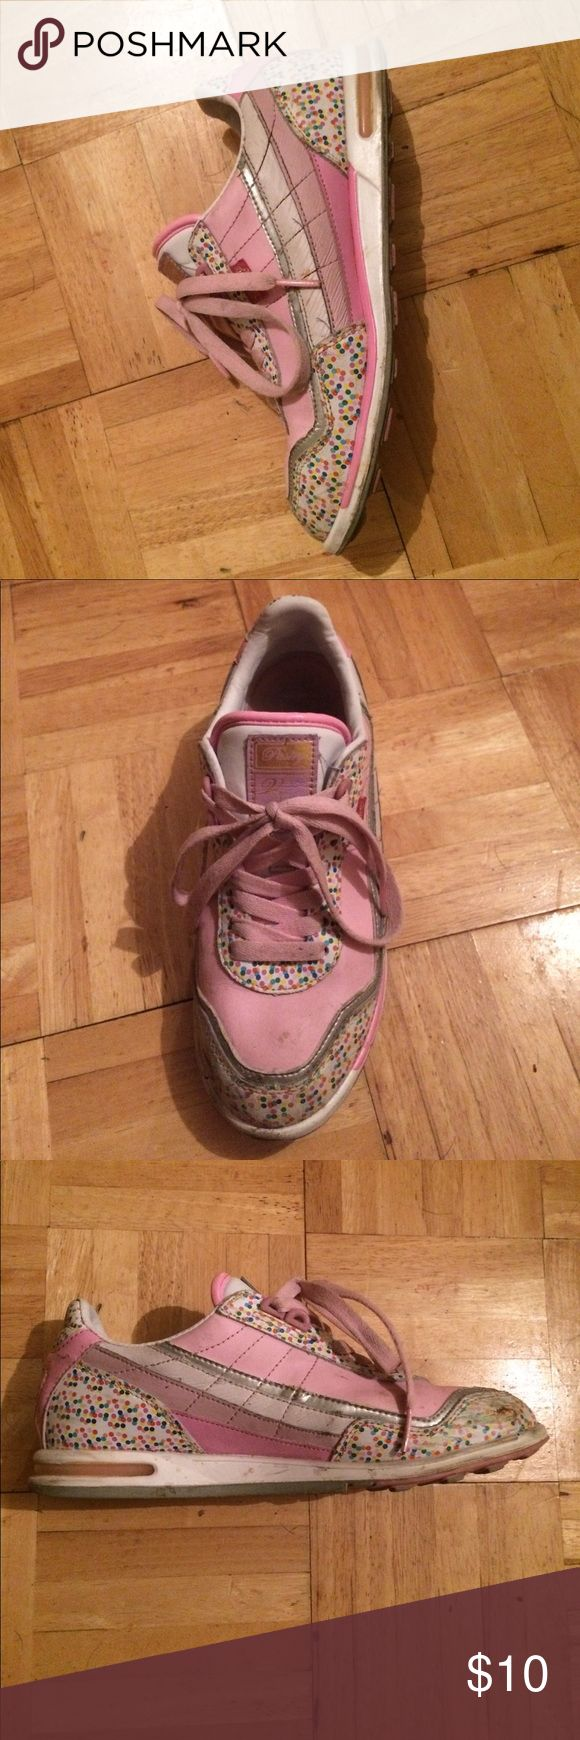 Kawaii shoes Pink and playful very kawaii pastry Shoes Sneakers